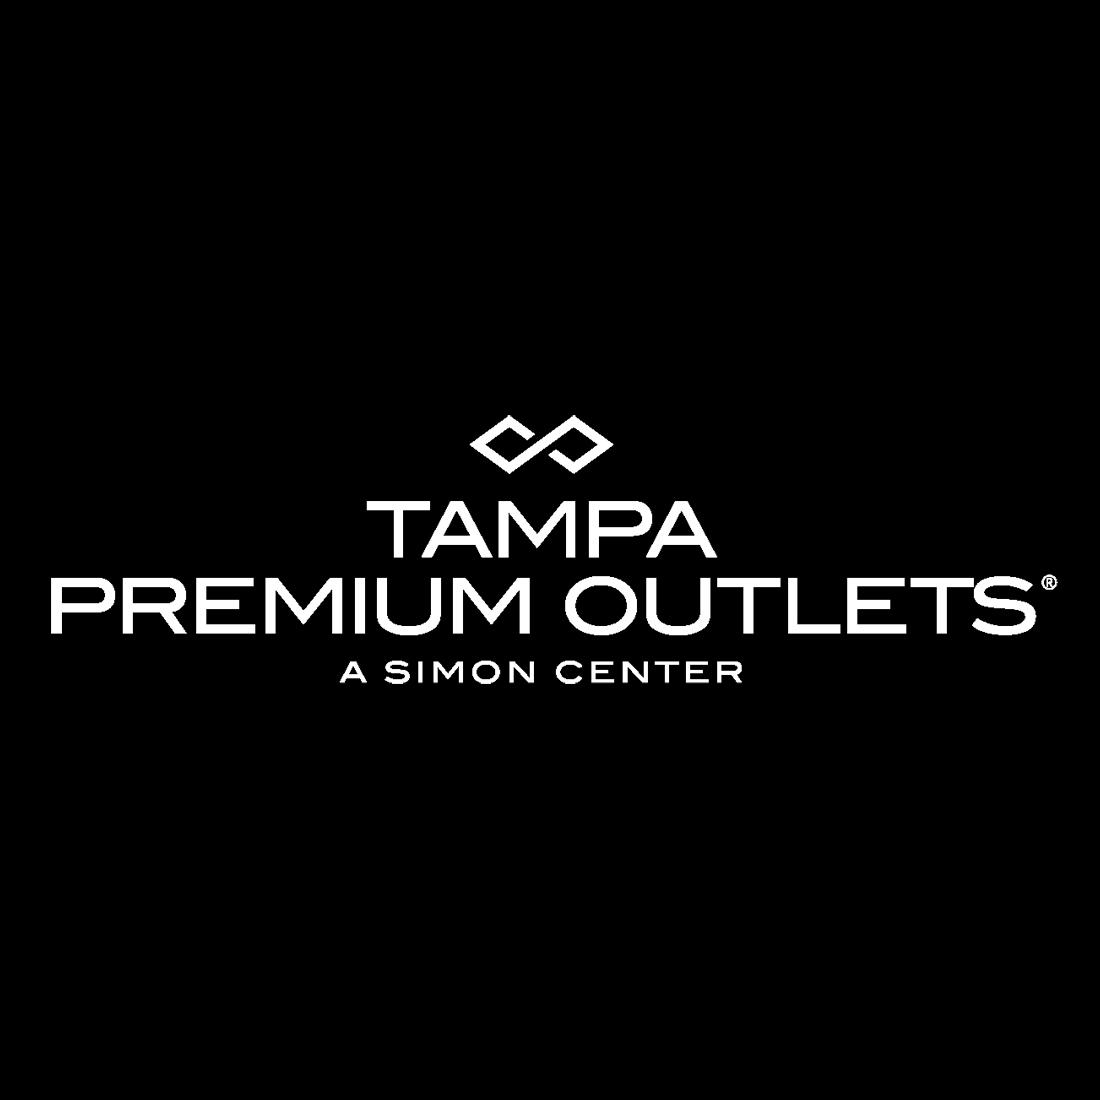 Tampa Premium Outlets - Lutz, FL - Factory Outlet Stores